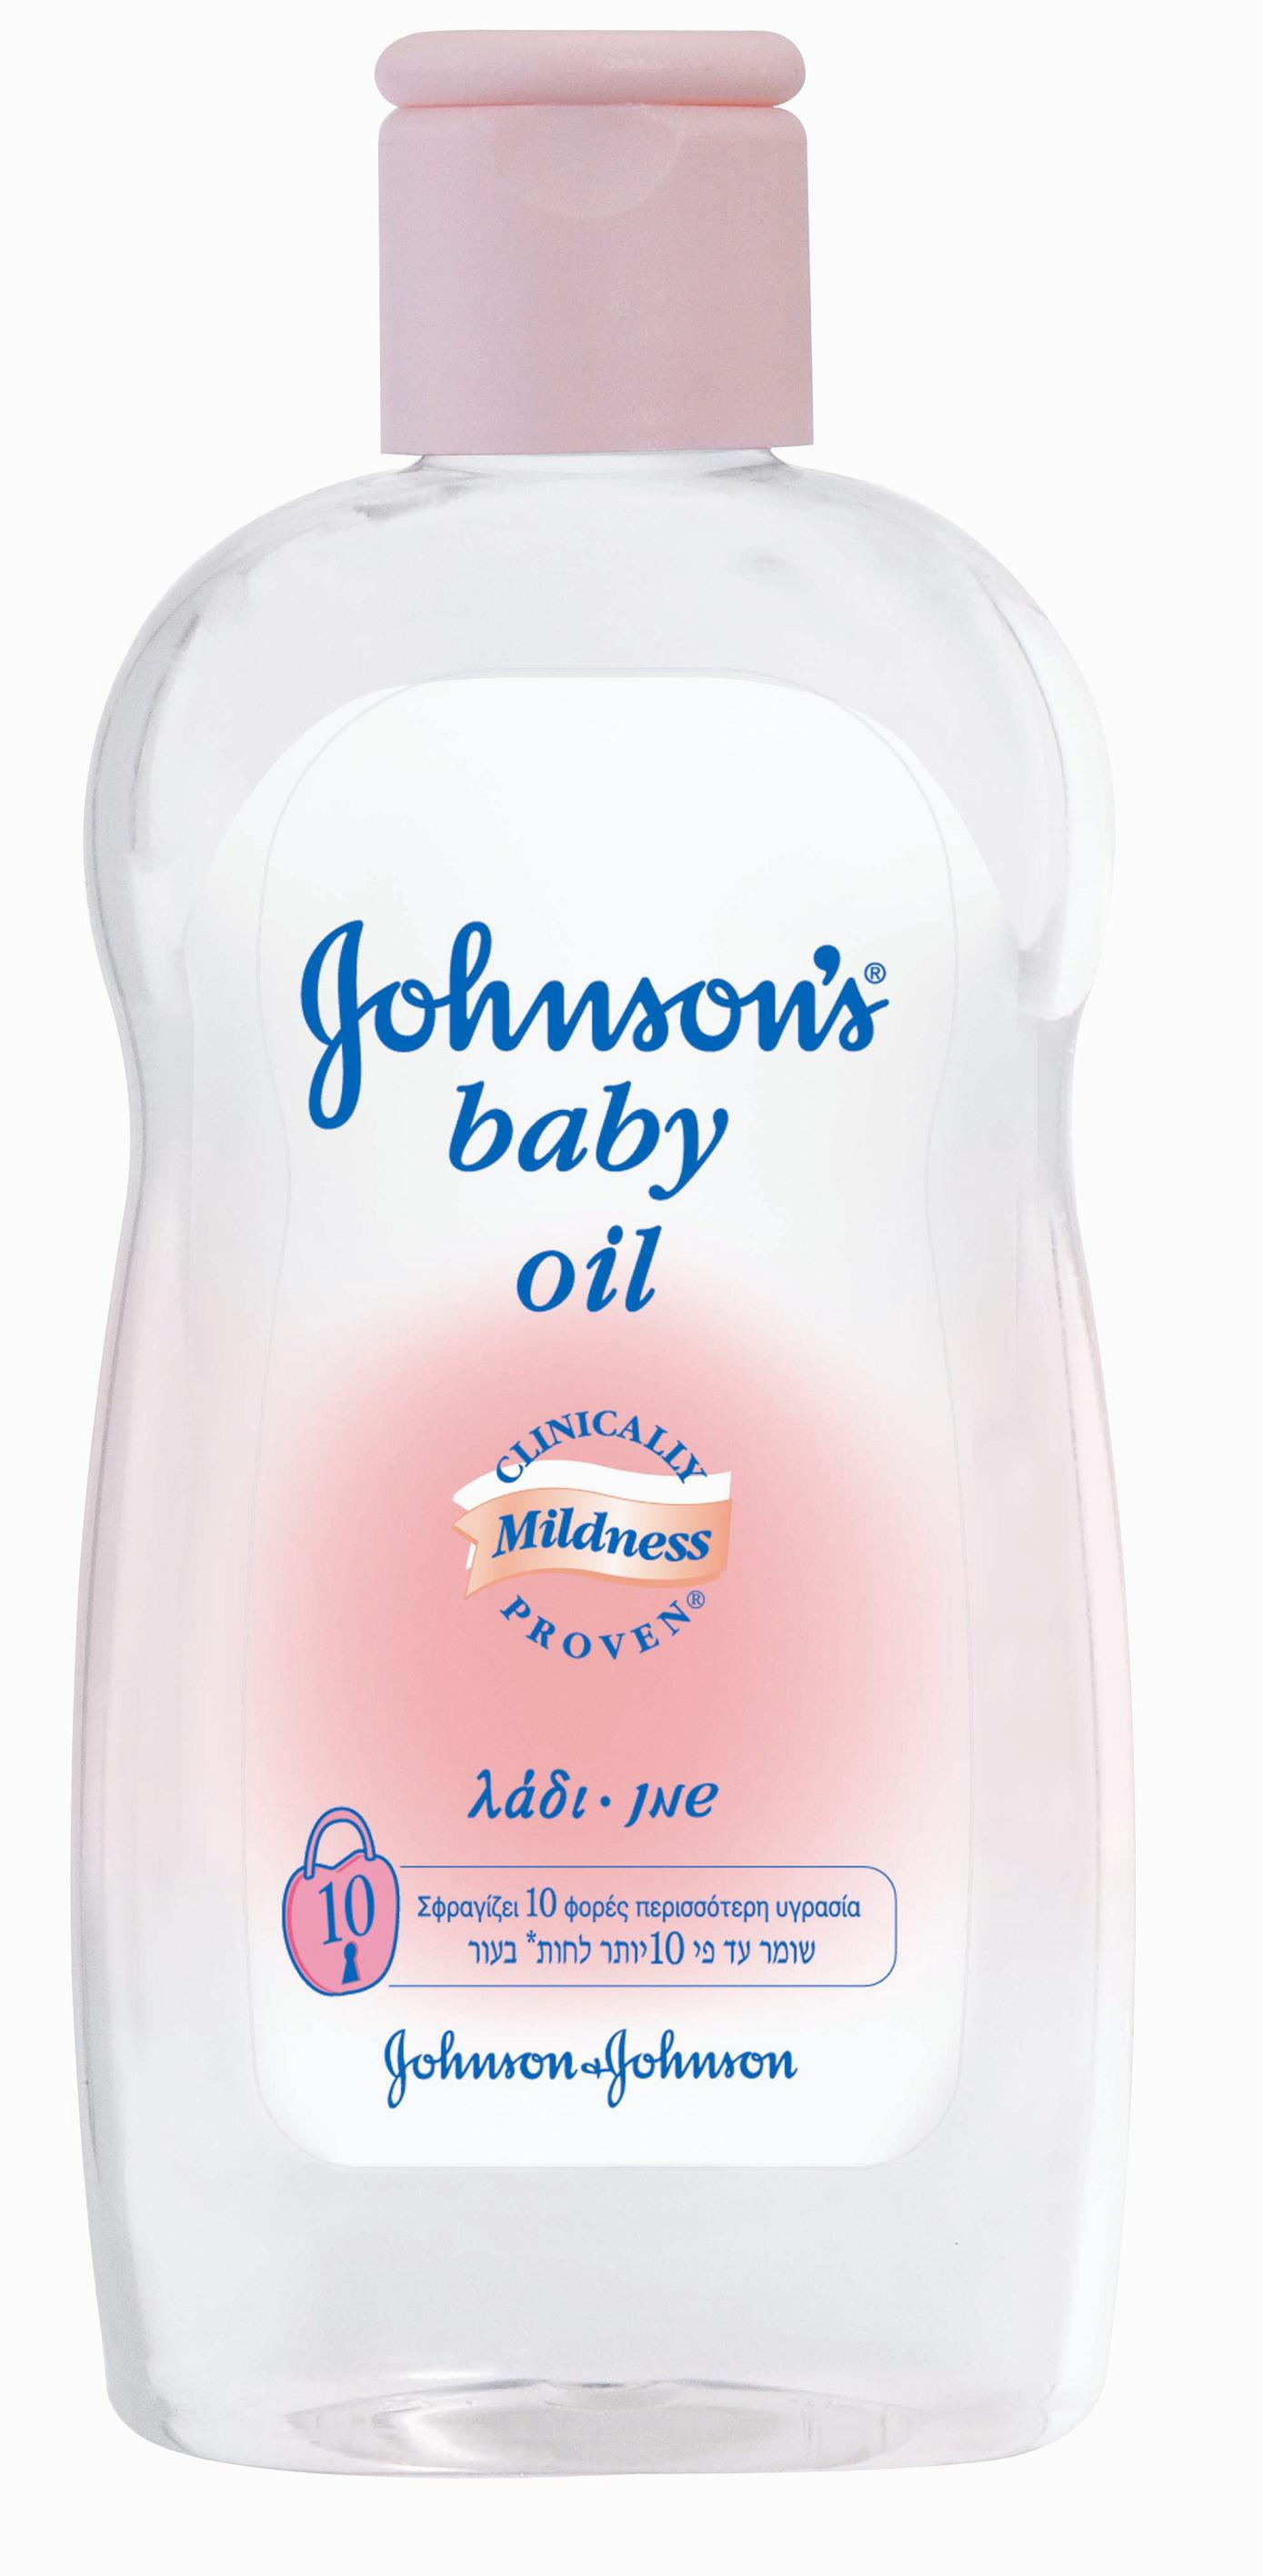 Save $1.00 off when you buy any 1 Johnson's Baby Oil